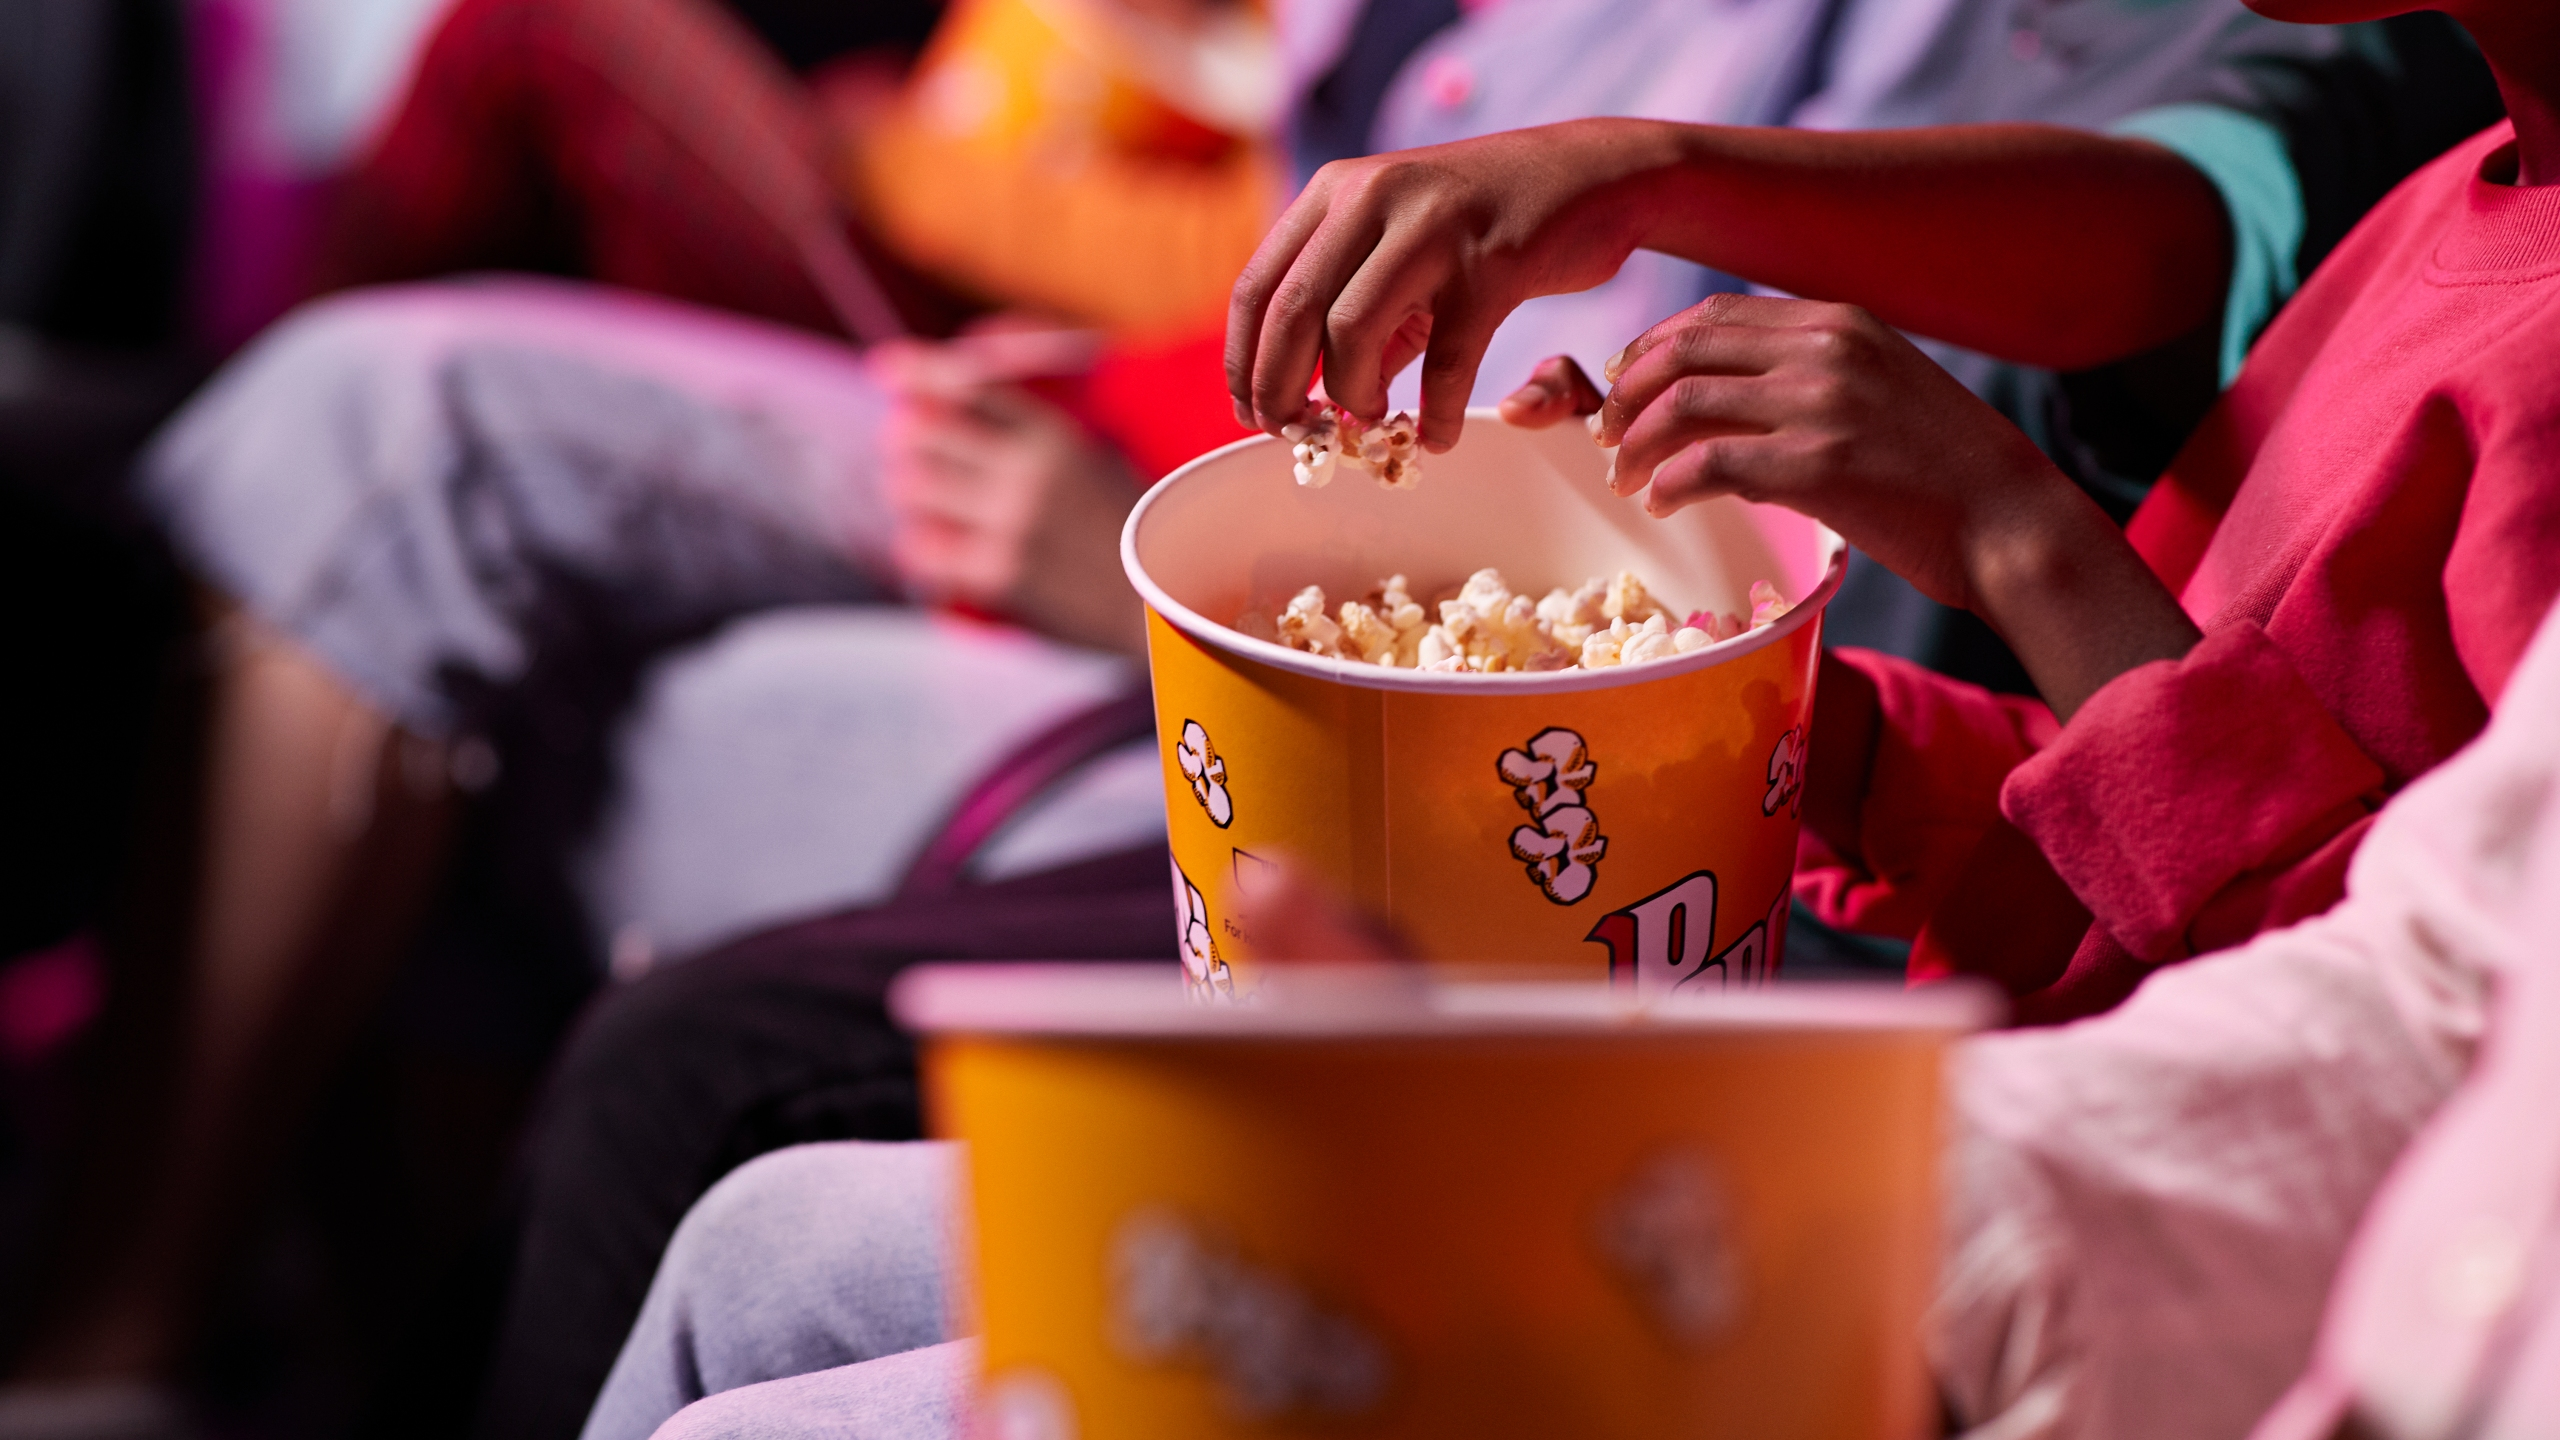 Friends share popcorn in a theater. (Getty Images)